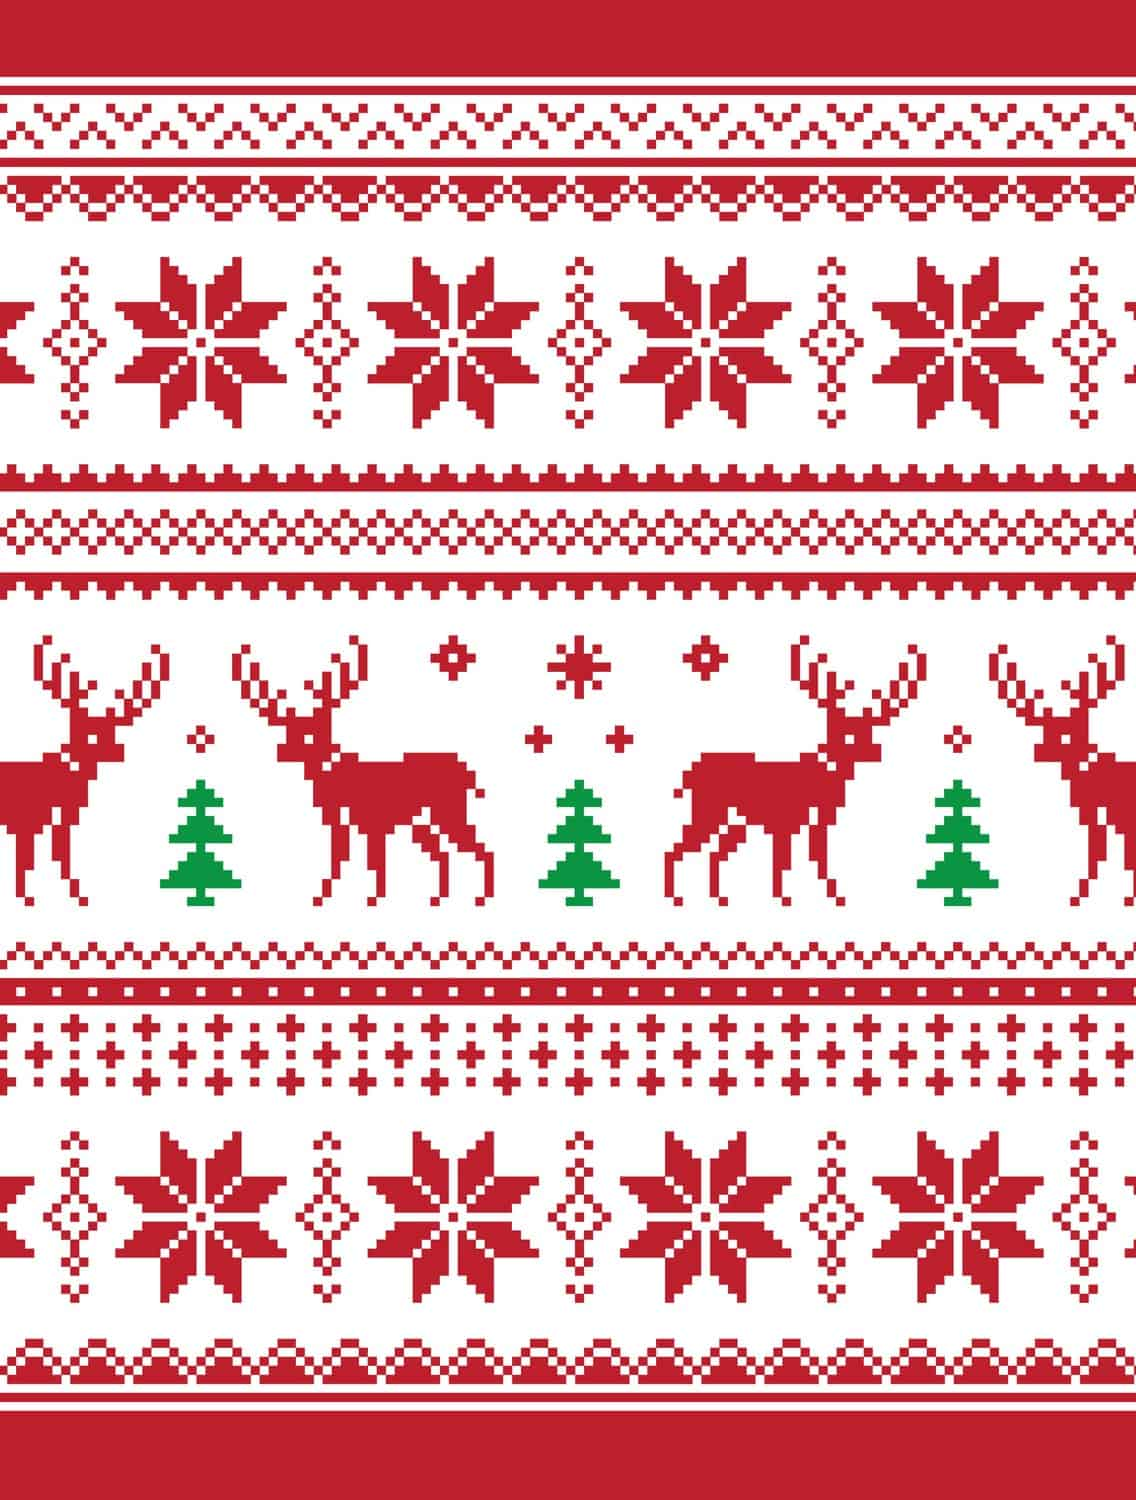 image relating to Printable Christmas Wrapping Paper identify 10 No cost Printable Unsightly Xmas Sweater Wrapping Papers